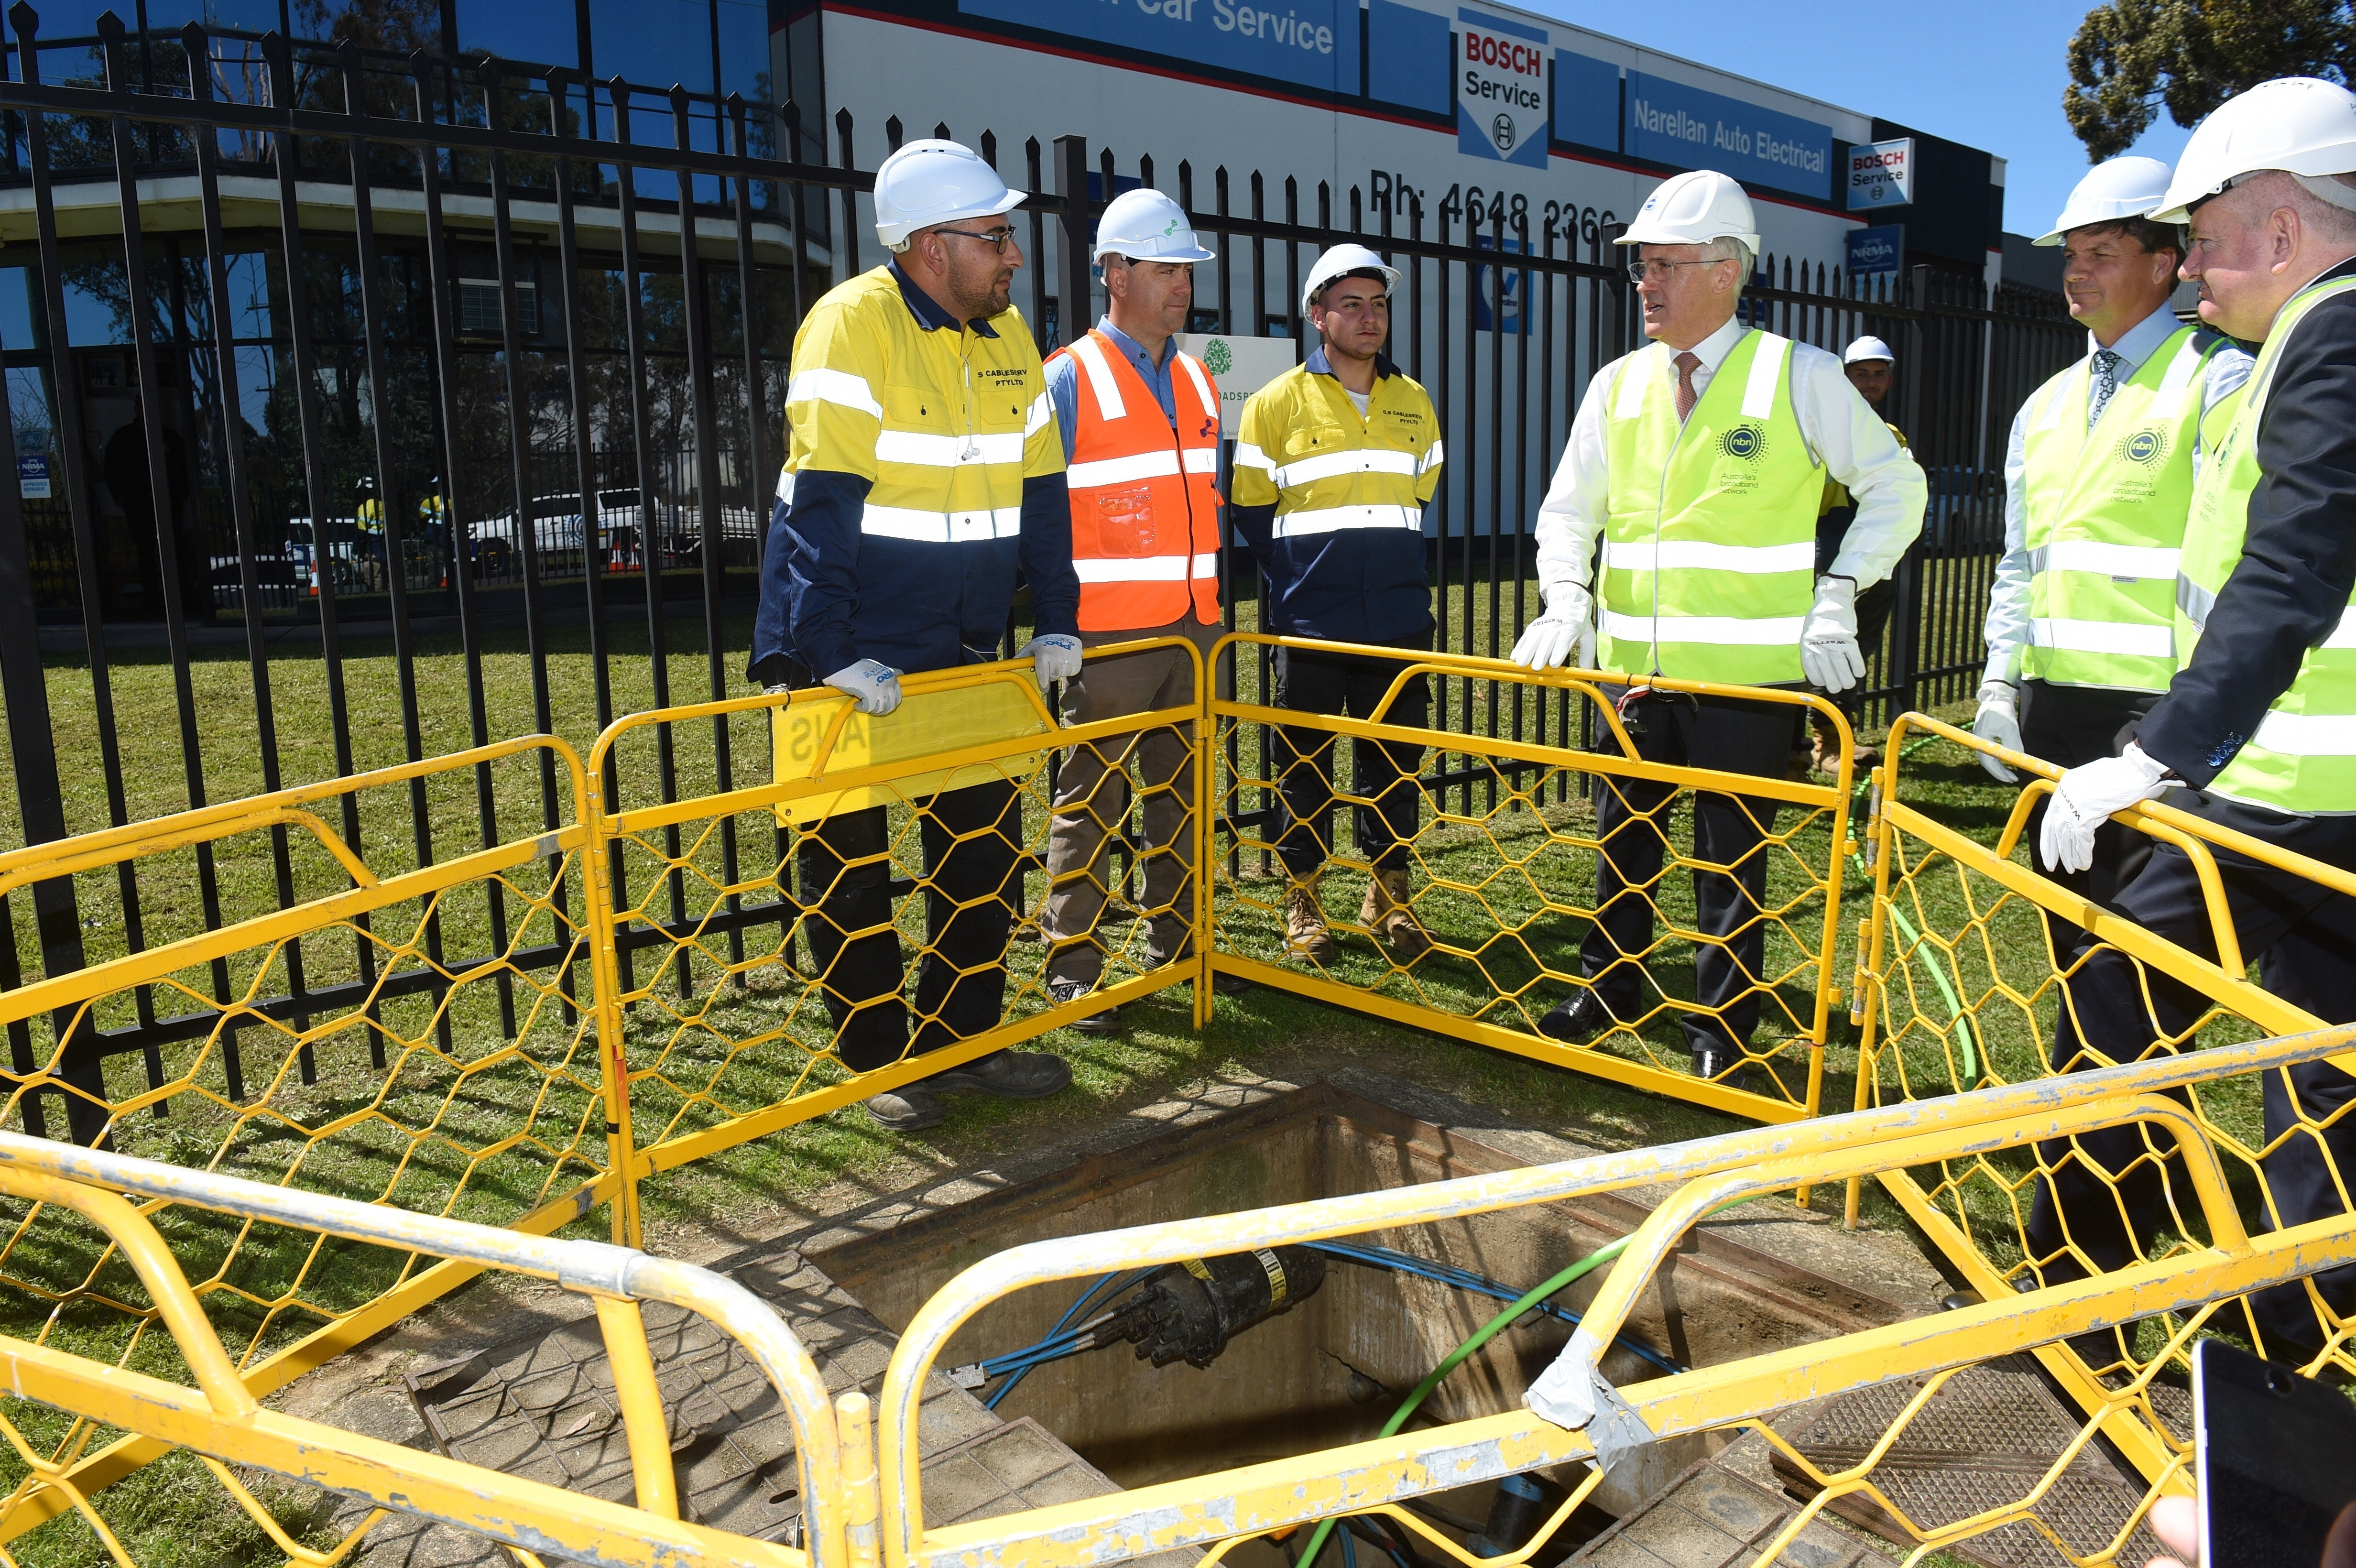 NBN faces irrelevance in cities as competitors build faster, cheaper alternatives